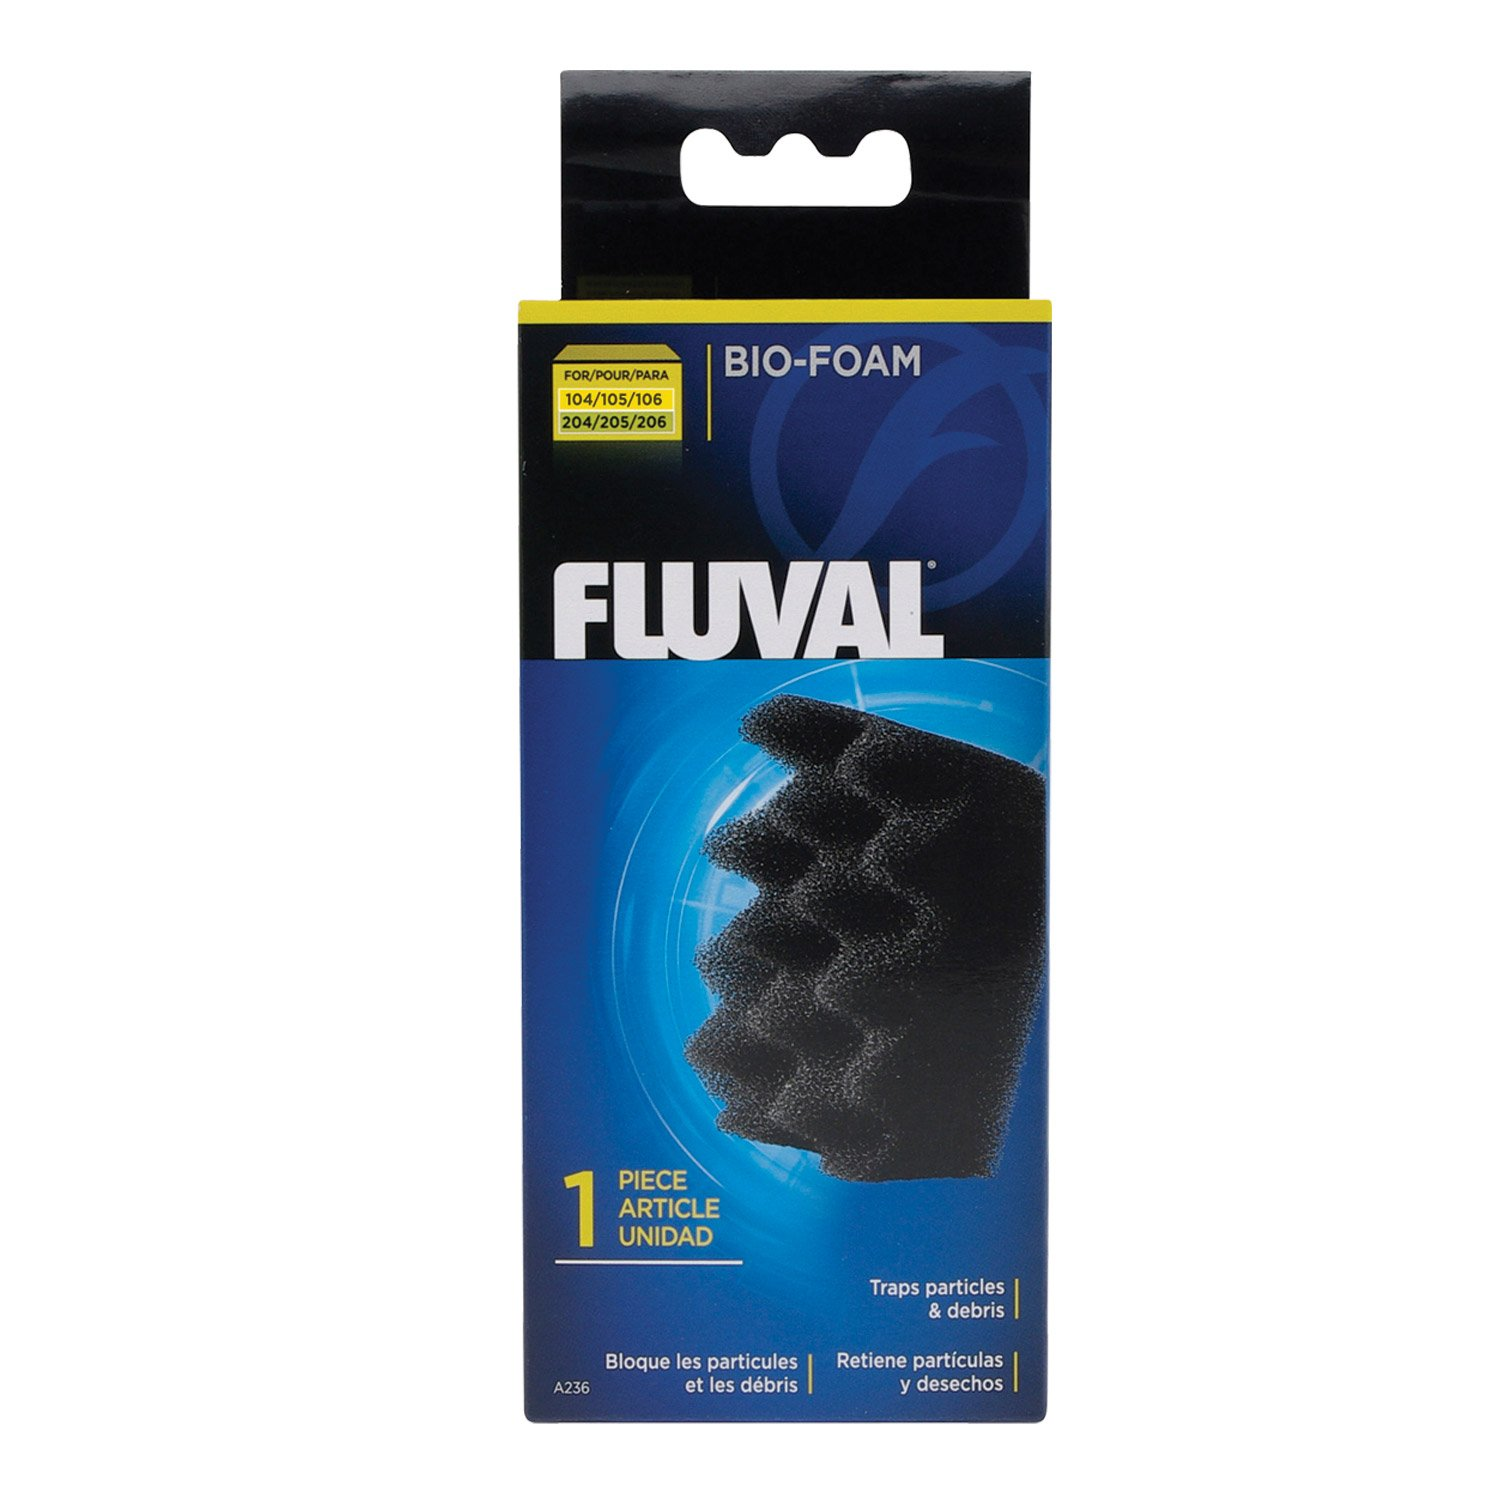 Fluval Bio-Foam Inserts, for 104-106 & 204-206 Canister Filters